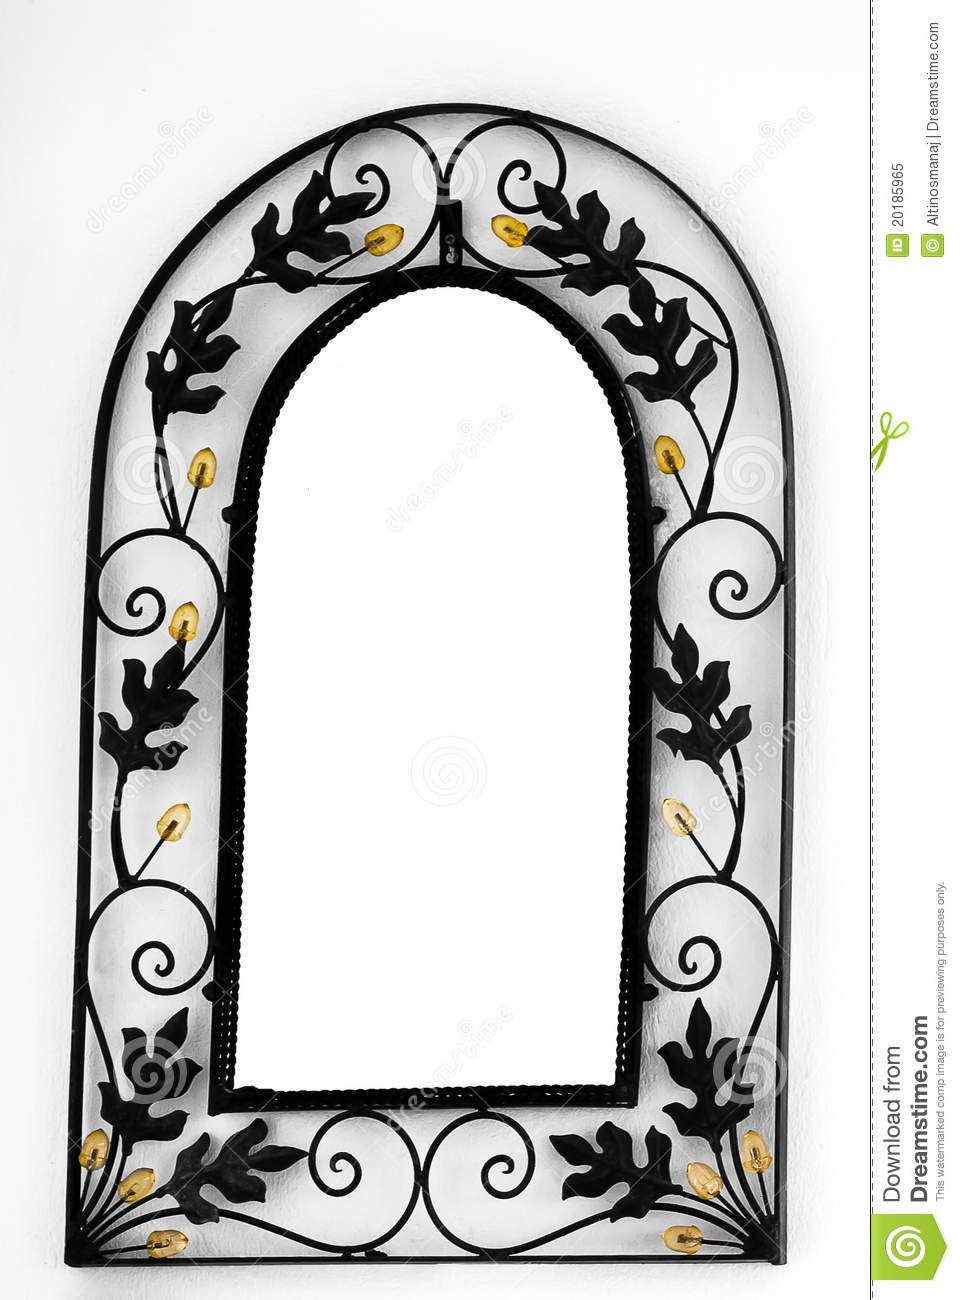 Mirror Frame on the wall